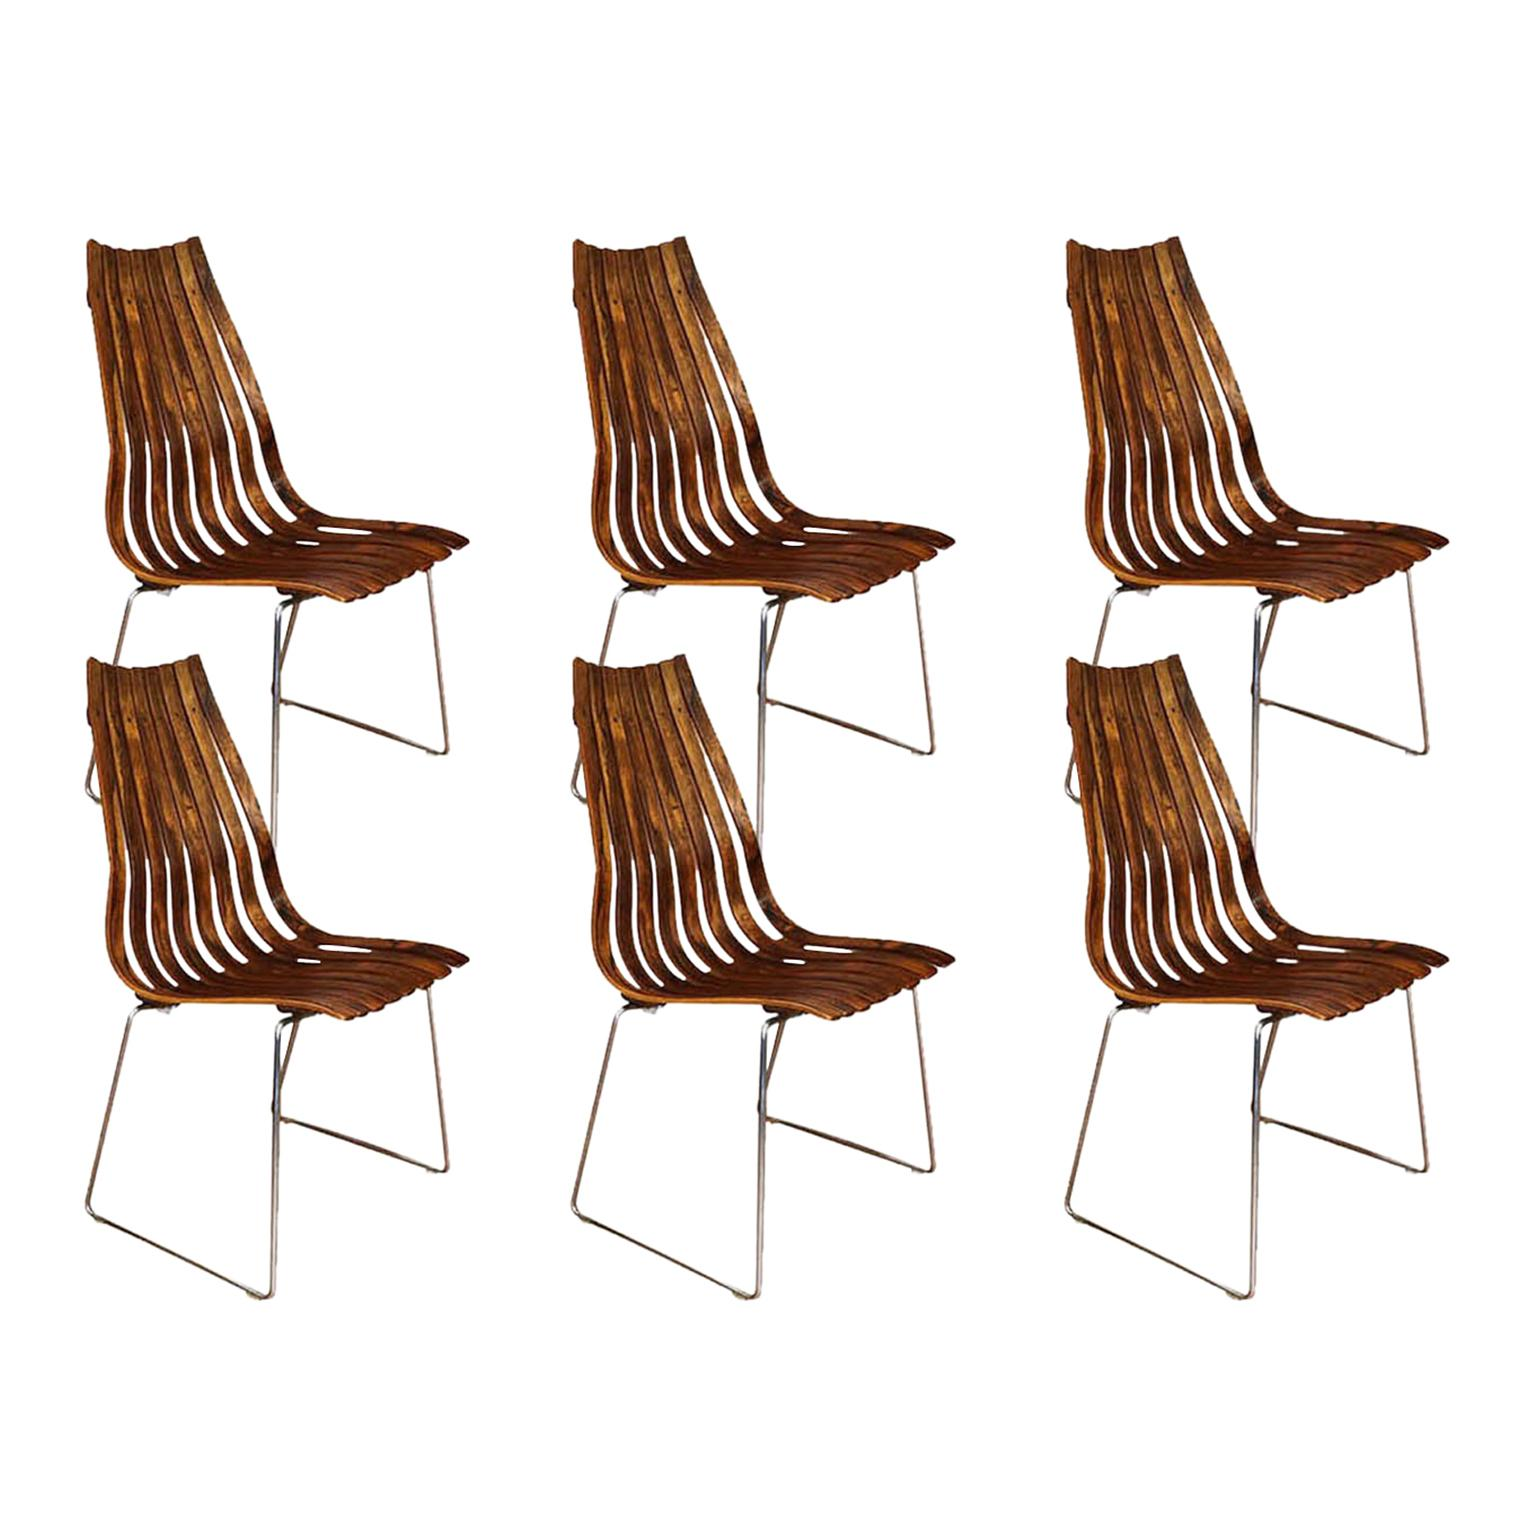 "Norwegian Modern Hans Brattrud ""Scandia"" Rosewood Dining Chairs"